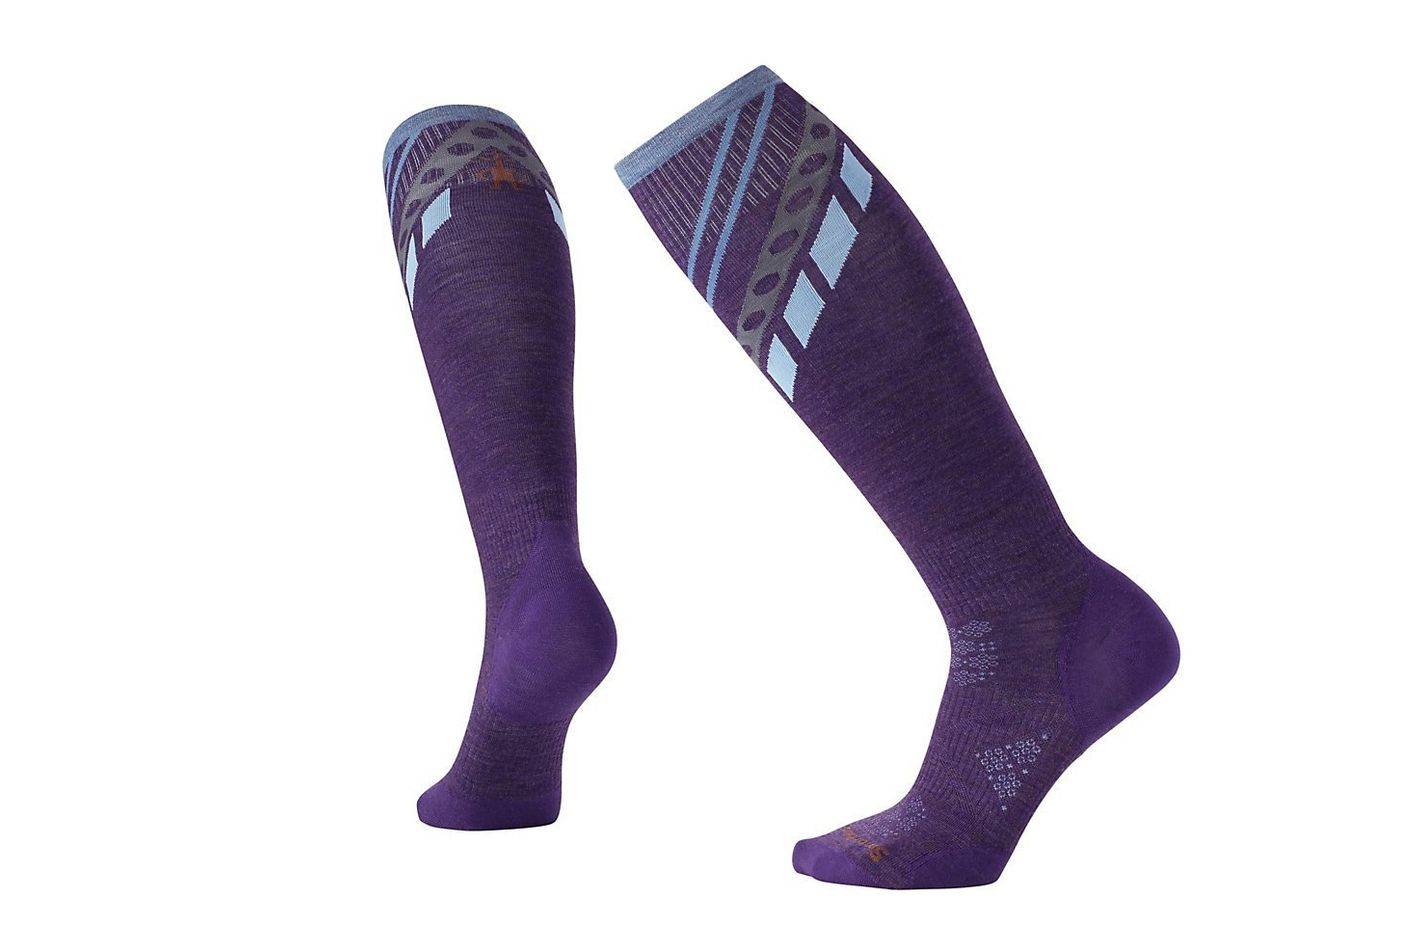 Smartwool Women's PhD Ski Ultra Light Pattern Socks